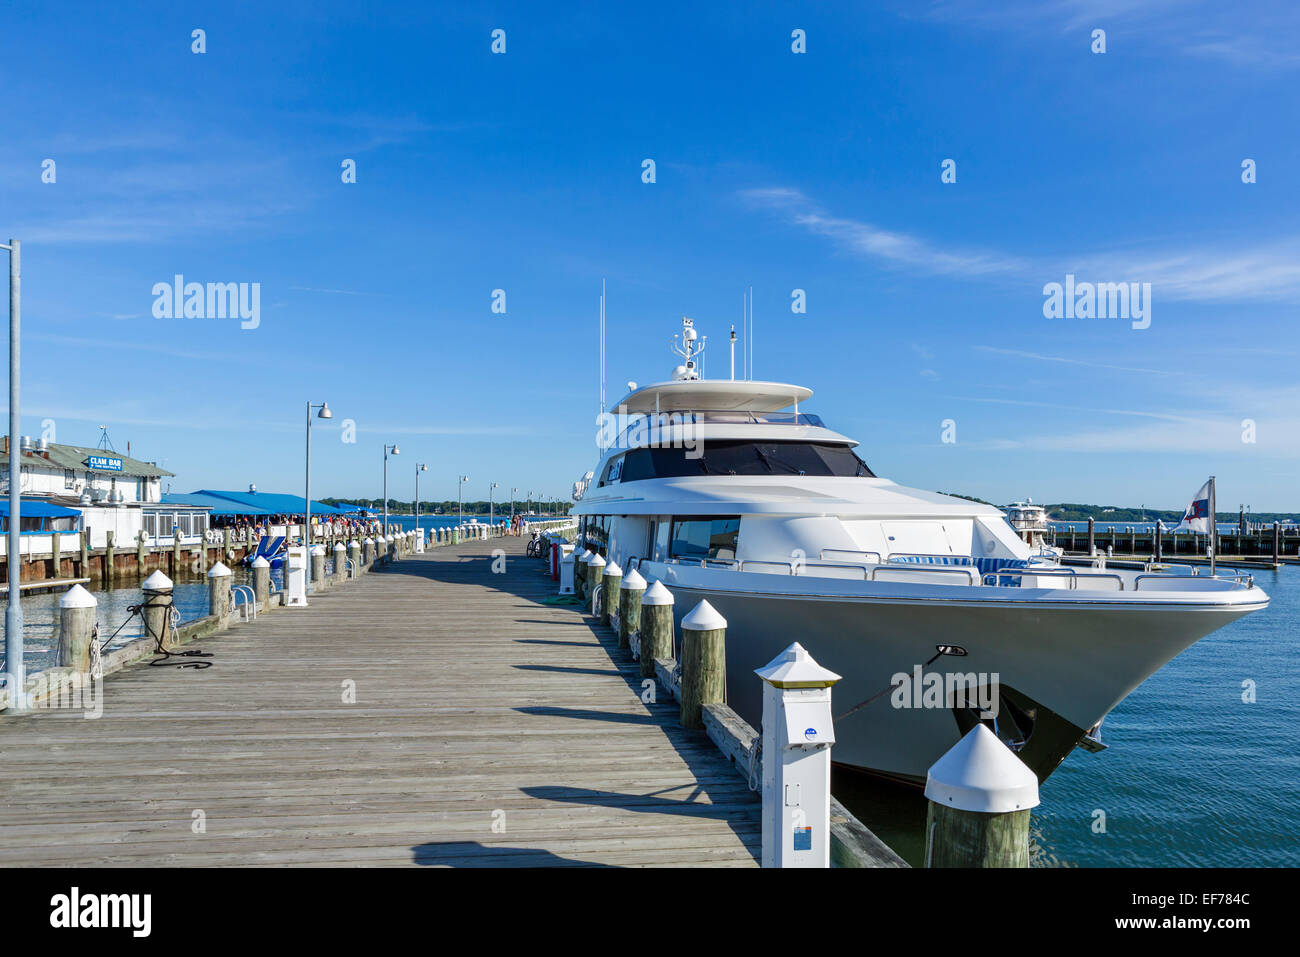 Luxury yacht docked in the village of Greenport, Suffolk County, Long Island, NY, USA - Stock Image